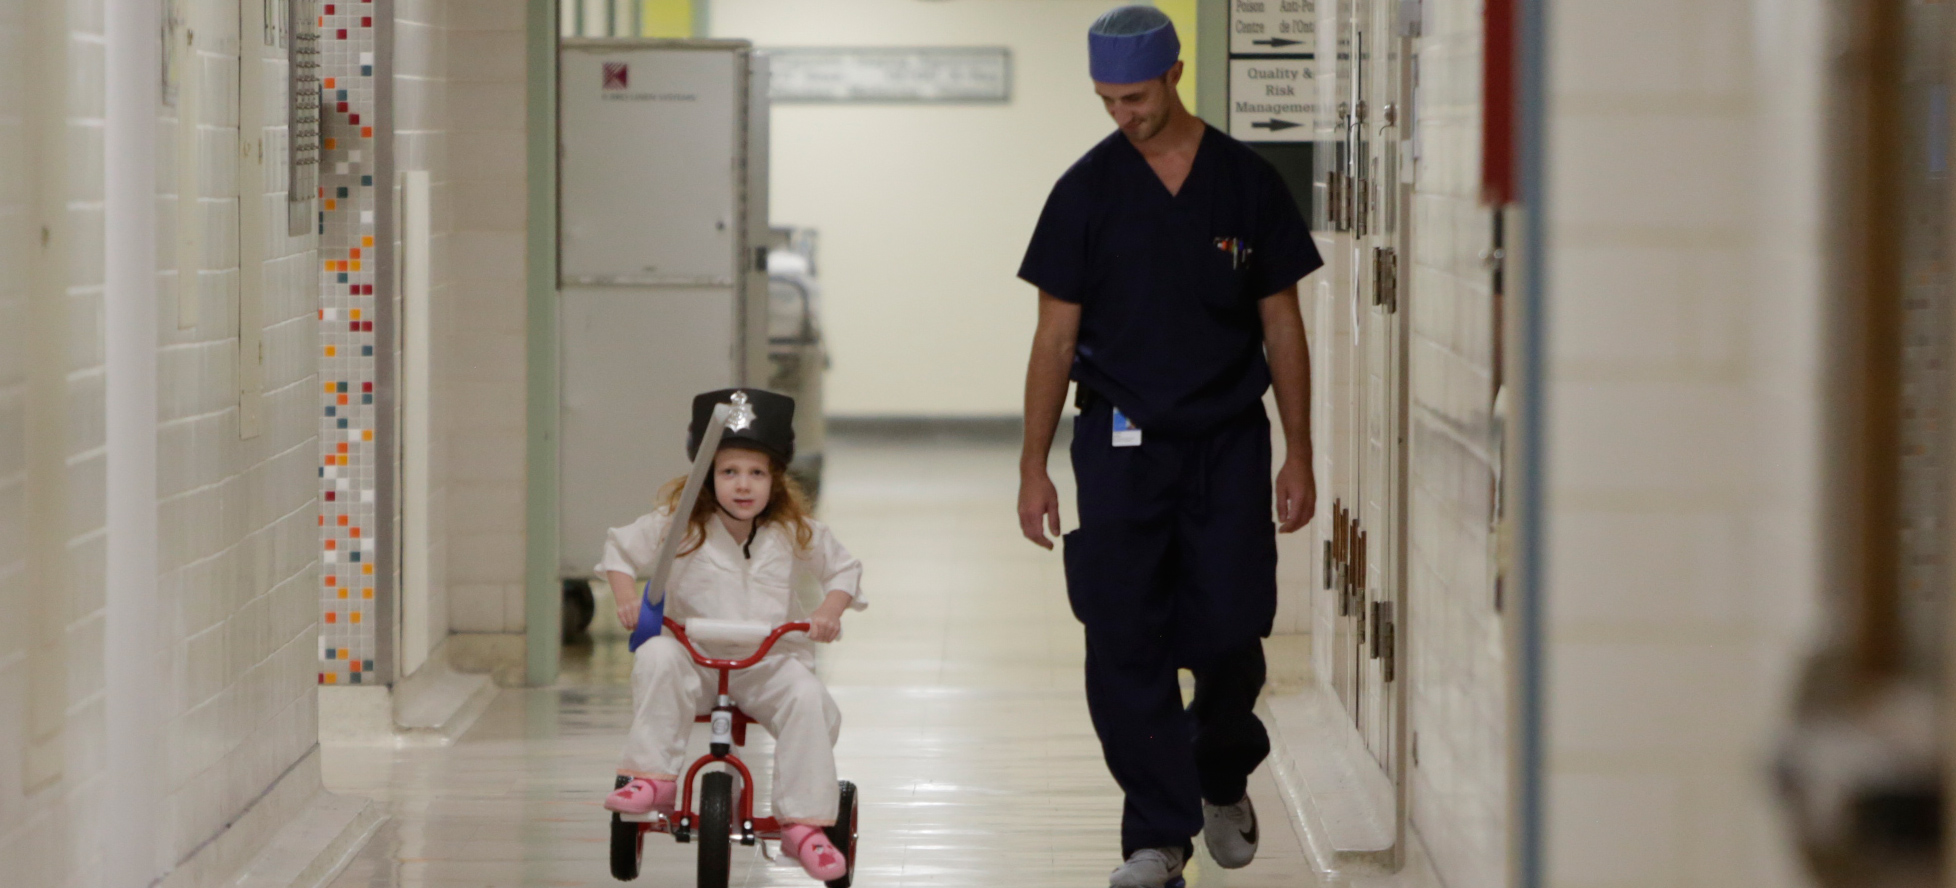 girl riding tricycle down hospital hallway